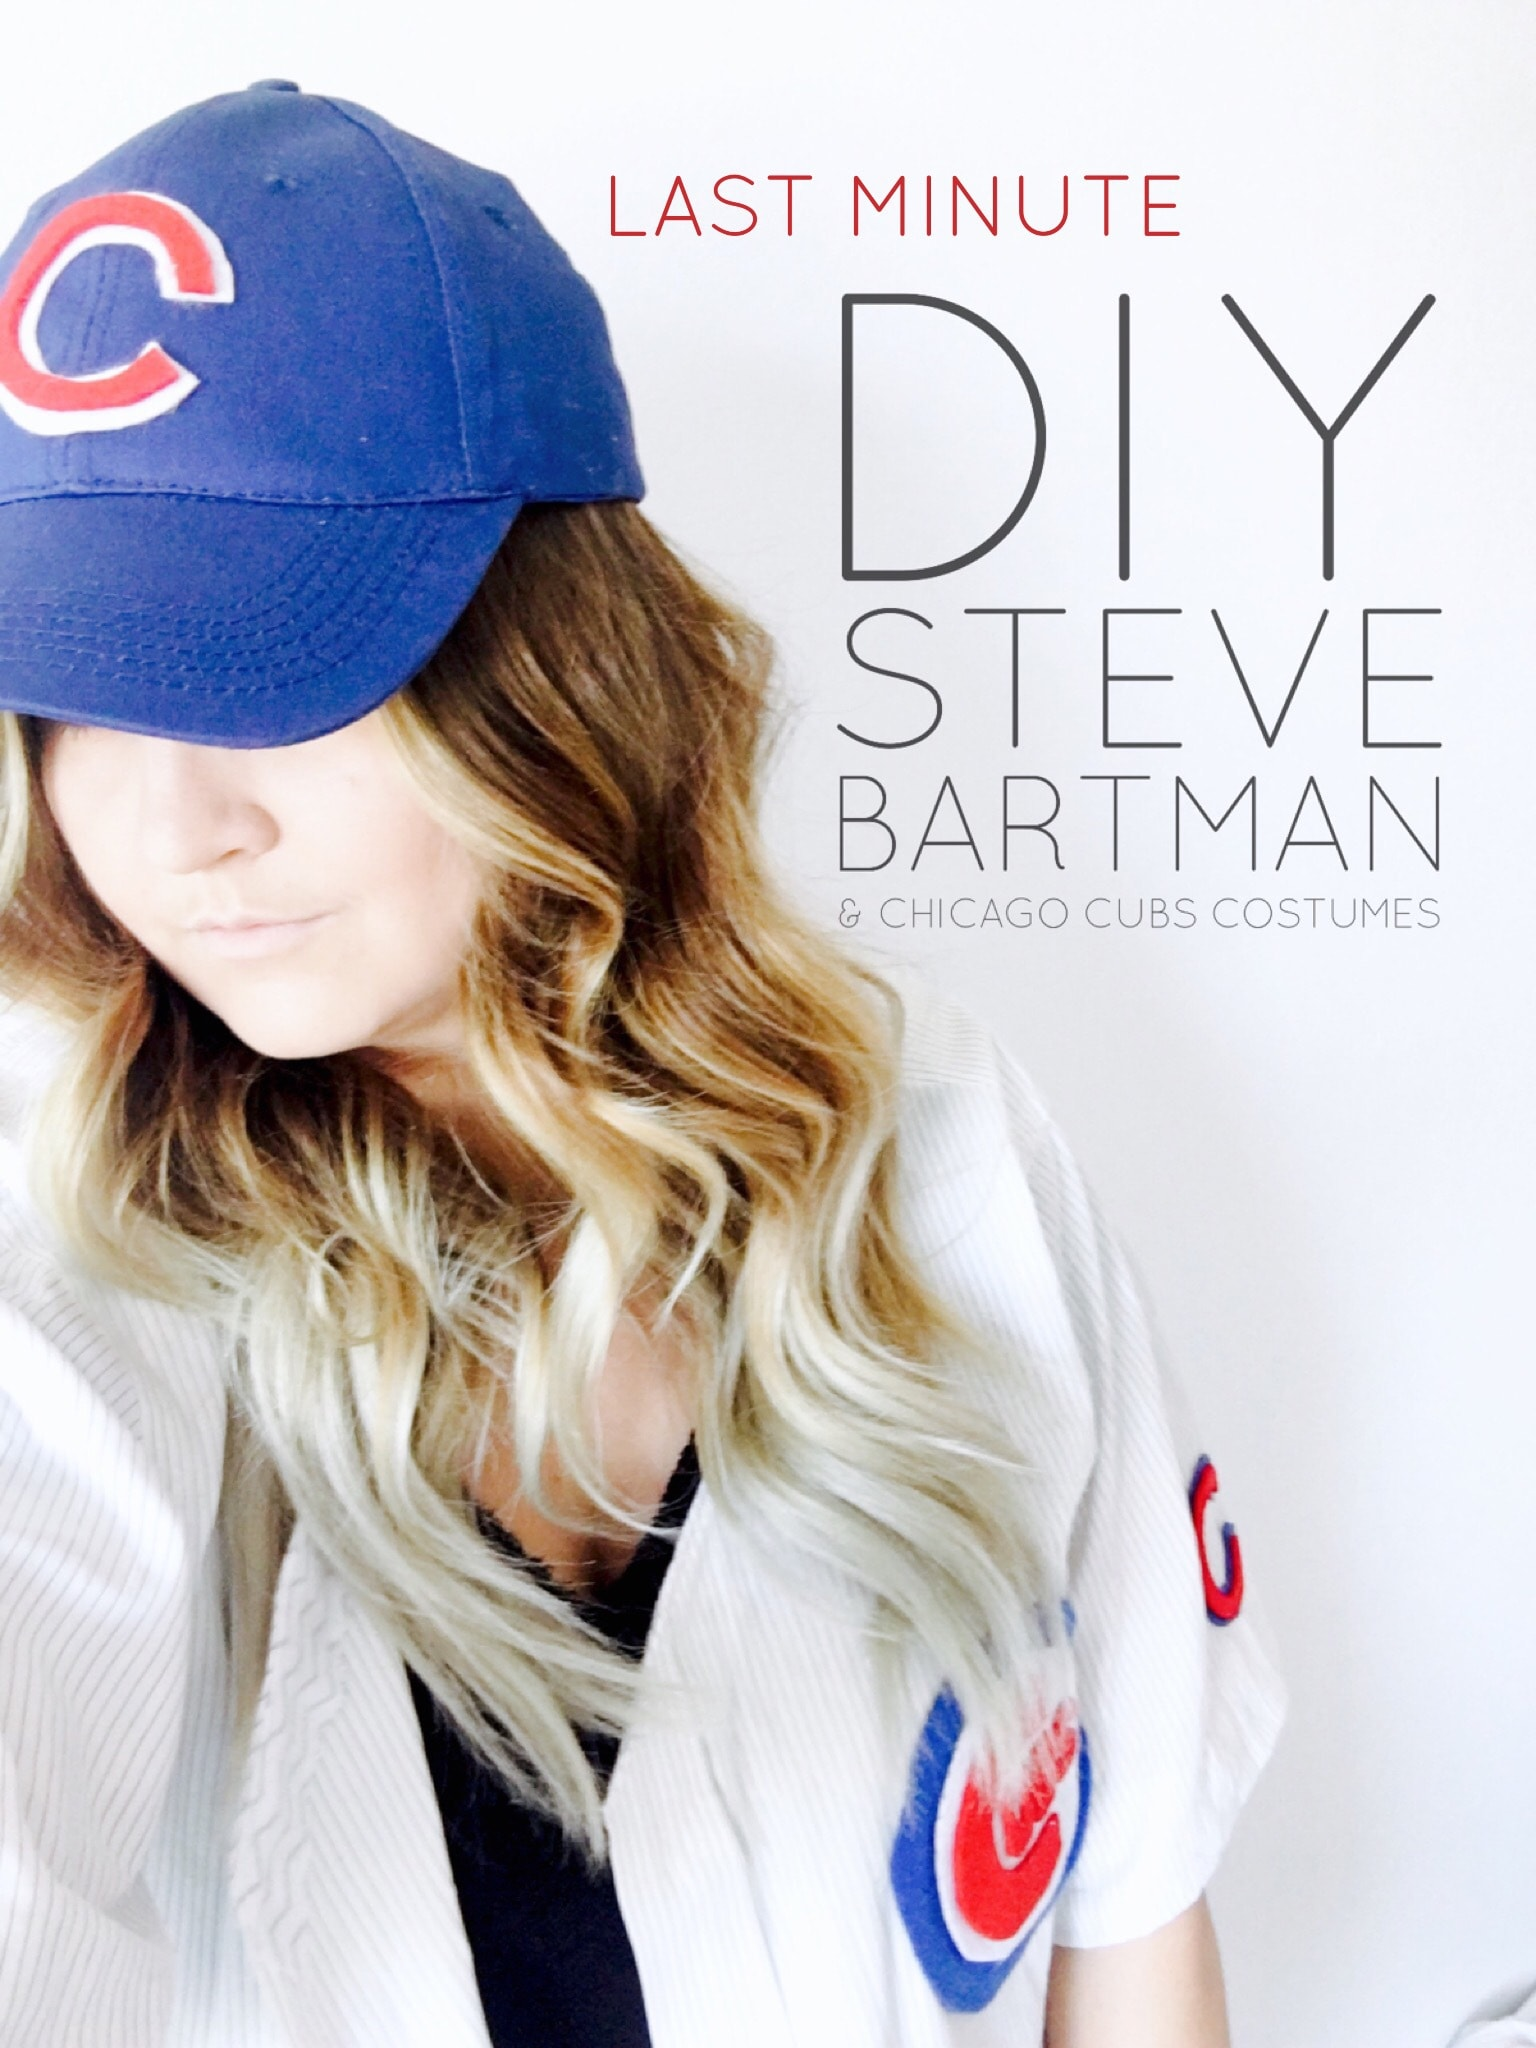 Last Minute DIY Steve Bartman & Chicago Cubs Costumes